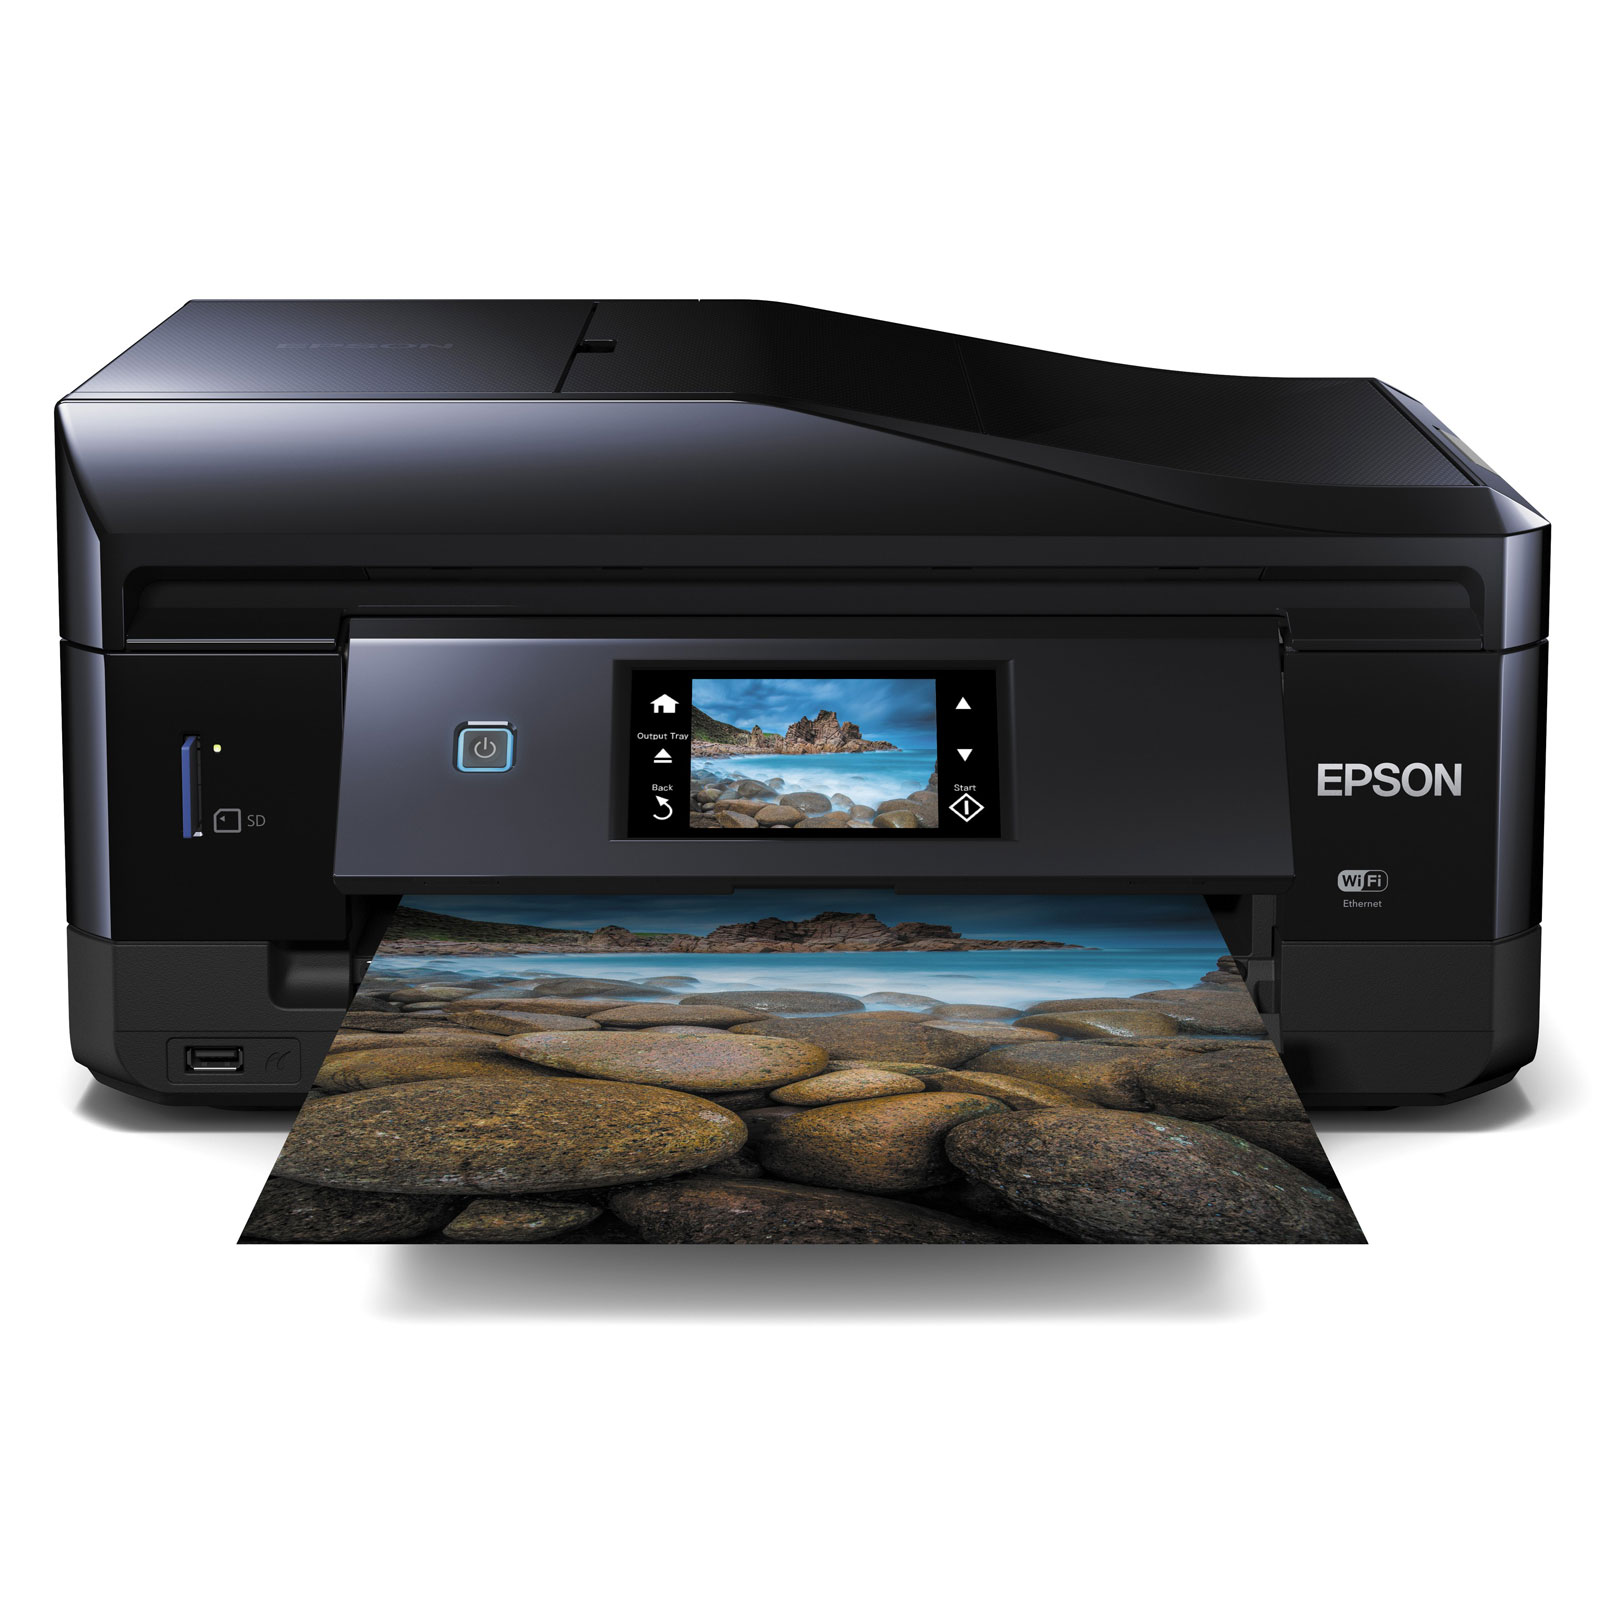 epson expression premium xp 820 imprimante multifonction epson sur. Black Bedroom Furniture Sets. Home Design Ideas